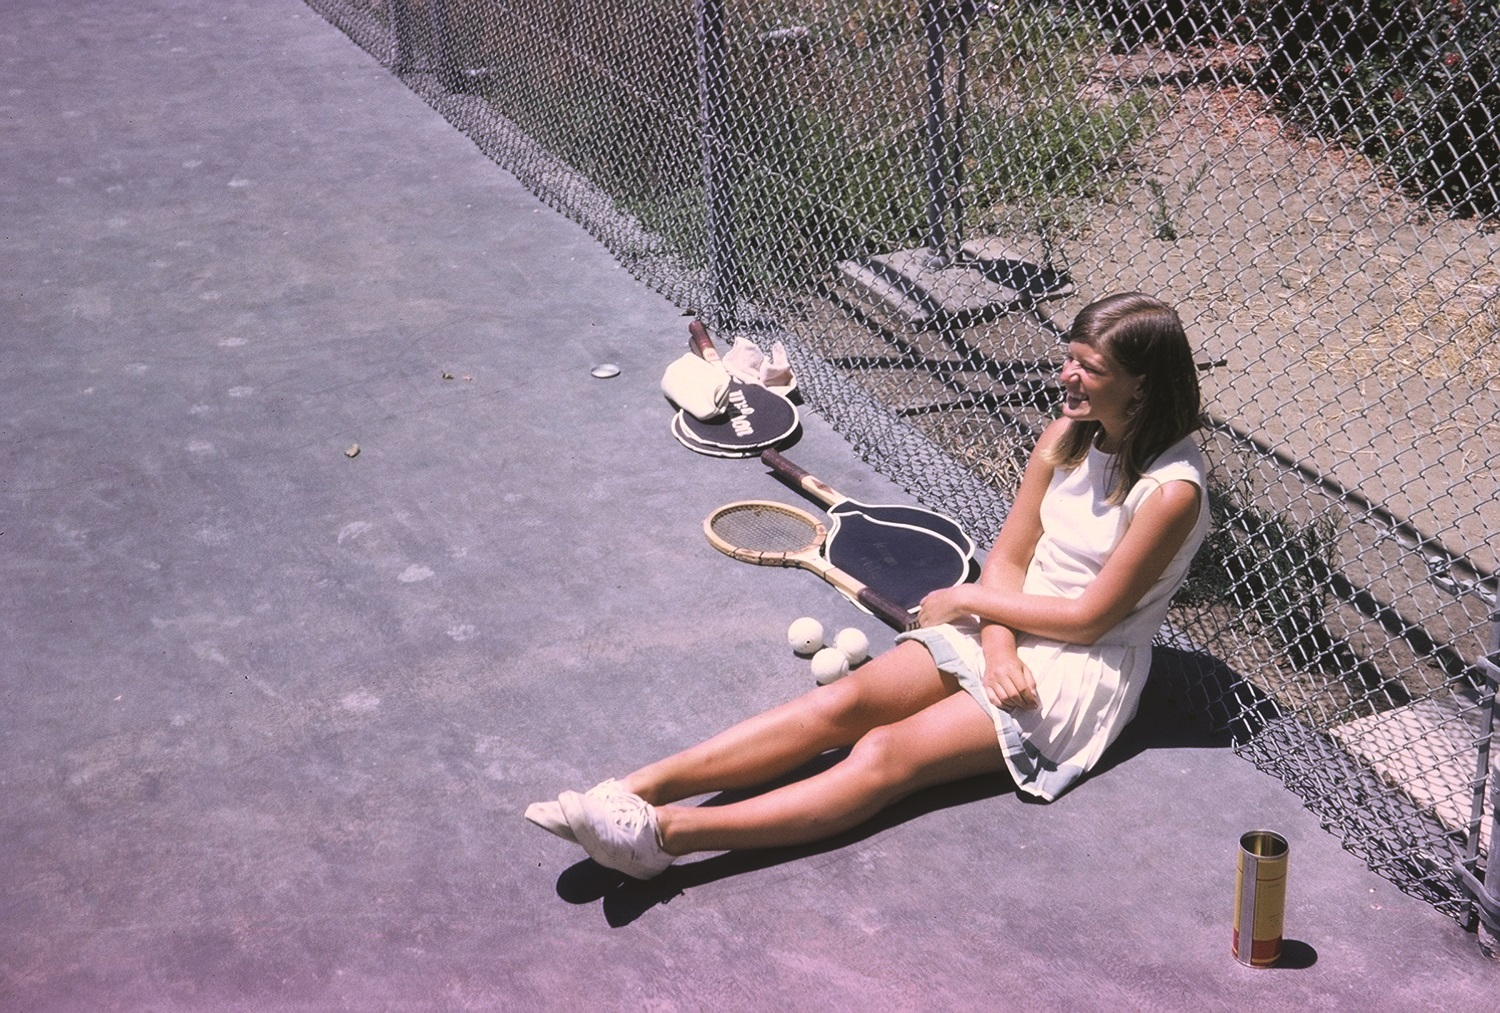 Sally Ride during a break from tennis. Courtesy of Tam O'Shaughnessy/MacMillan Children's Publishing Group